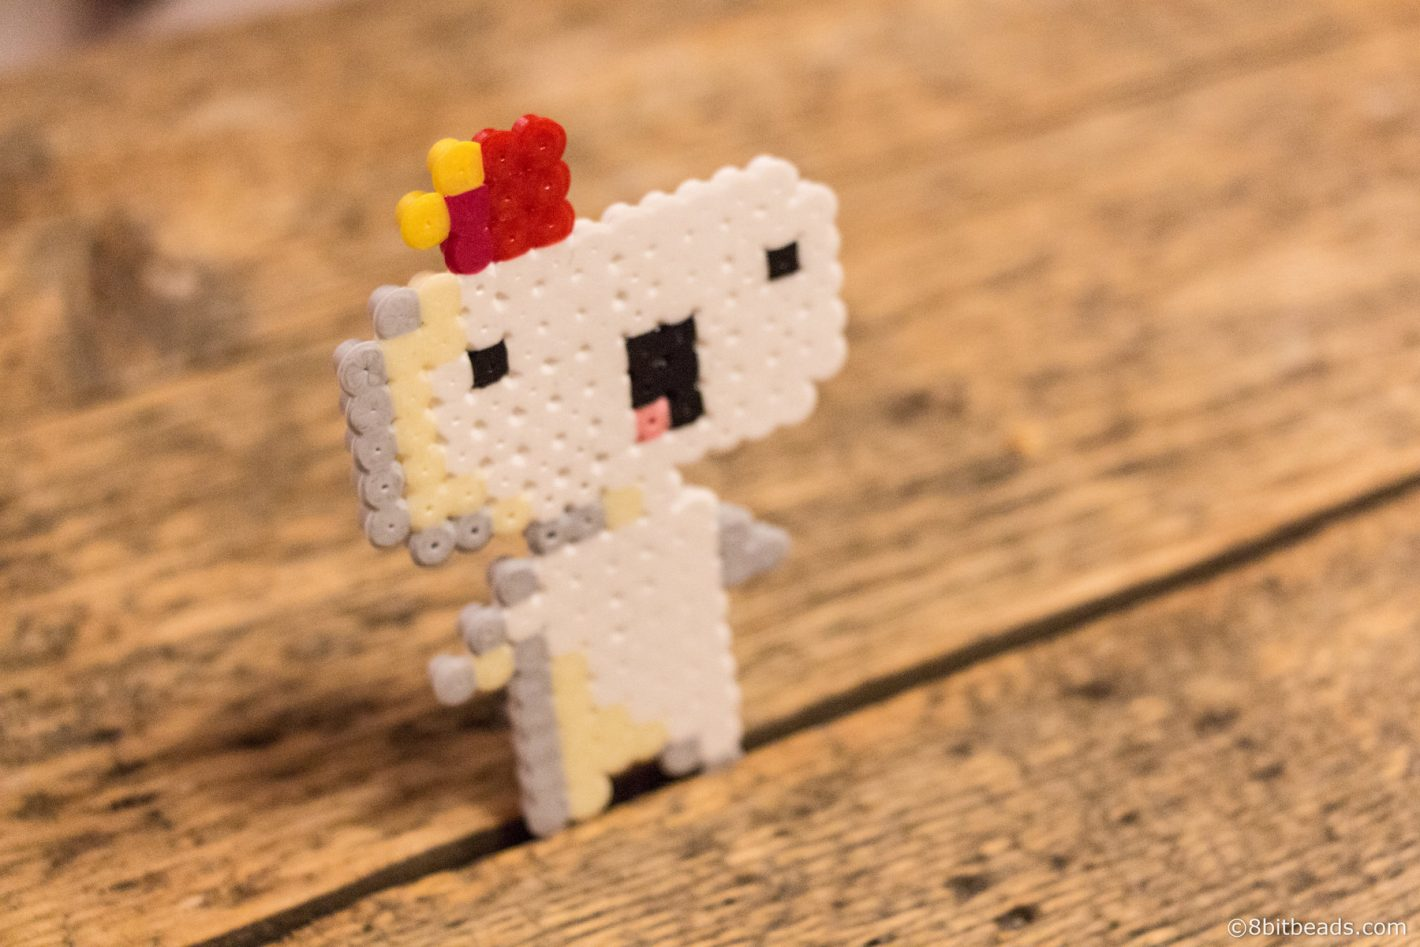 Gomez from Fez - 8bitbeads.com